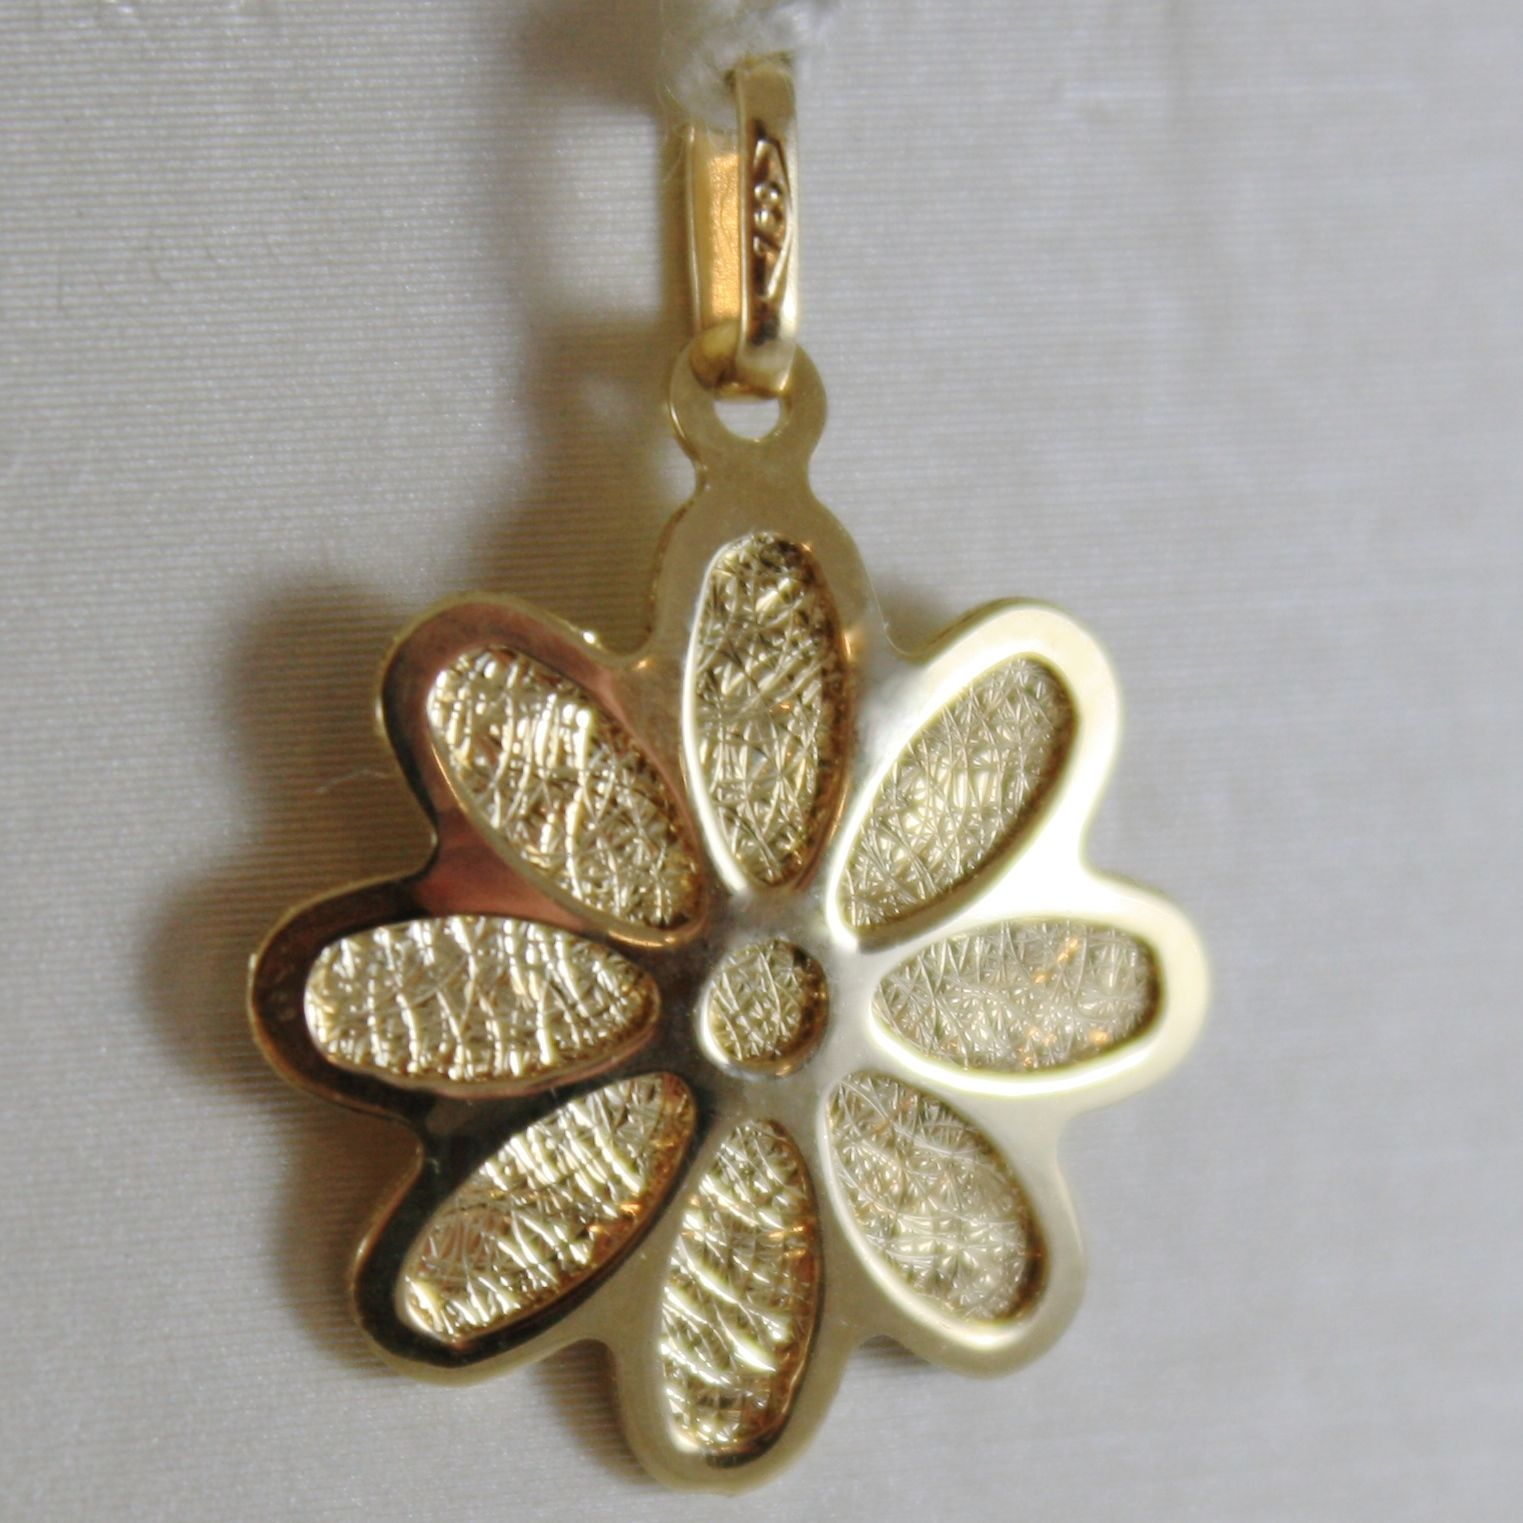 18K YELLOW GOLD FLAT FLOWER DAISY CHARM PENDANT, FINELY WORKED, MADE IN ITALY